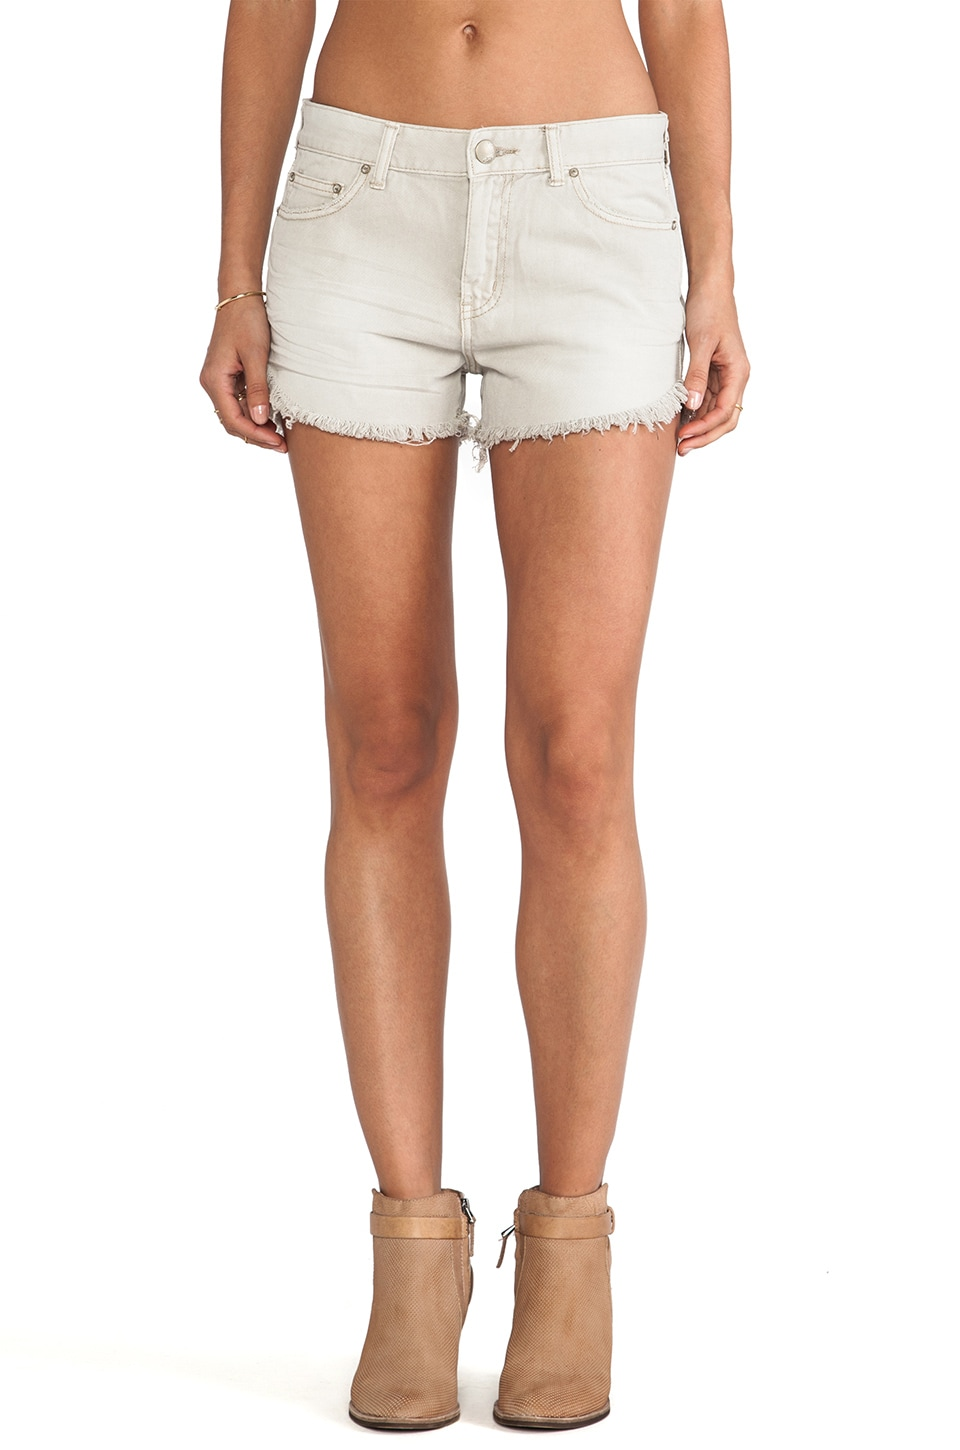 Free People Rugged Ripped Denim Short in Chalk